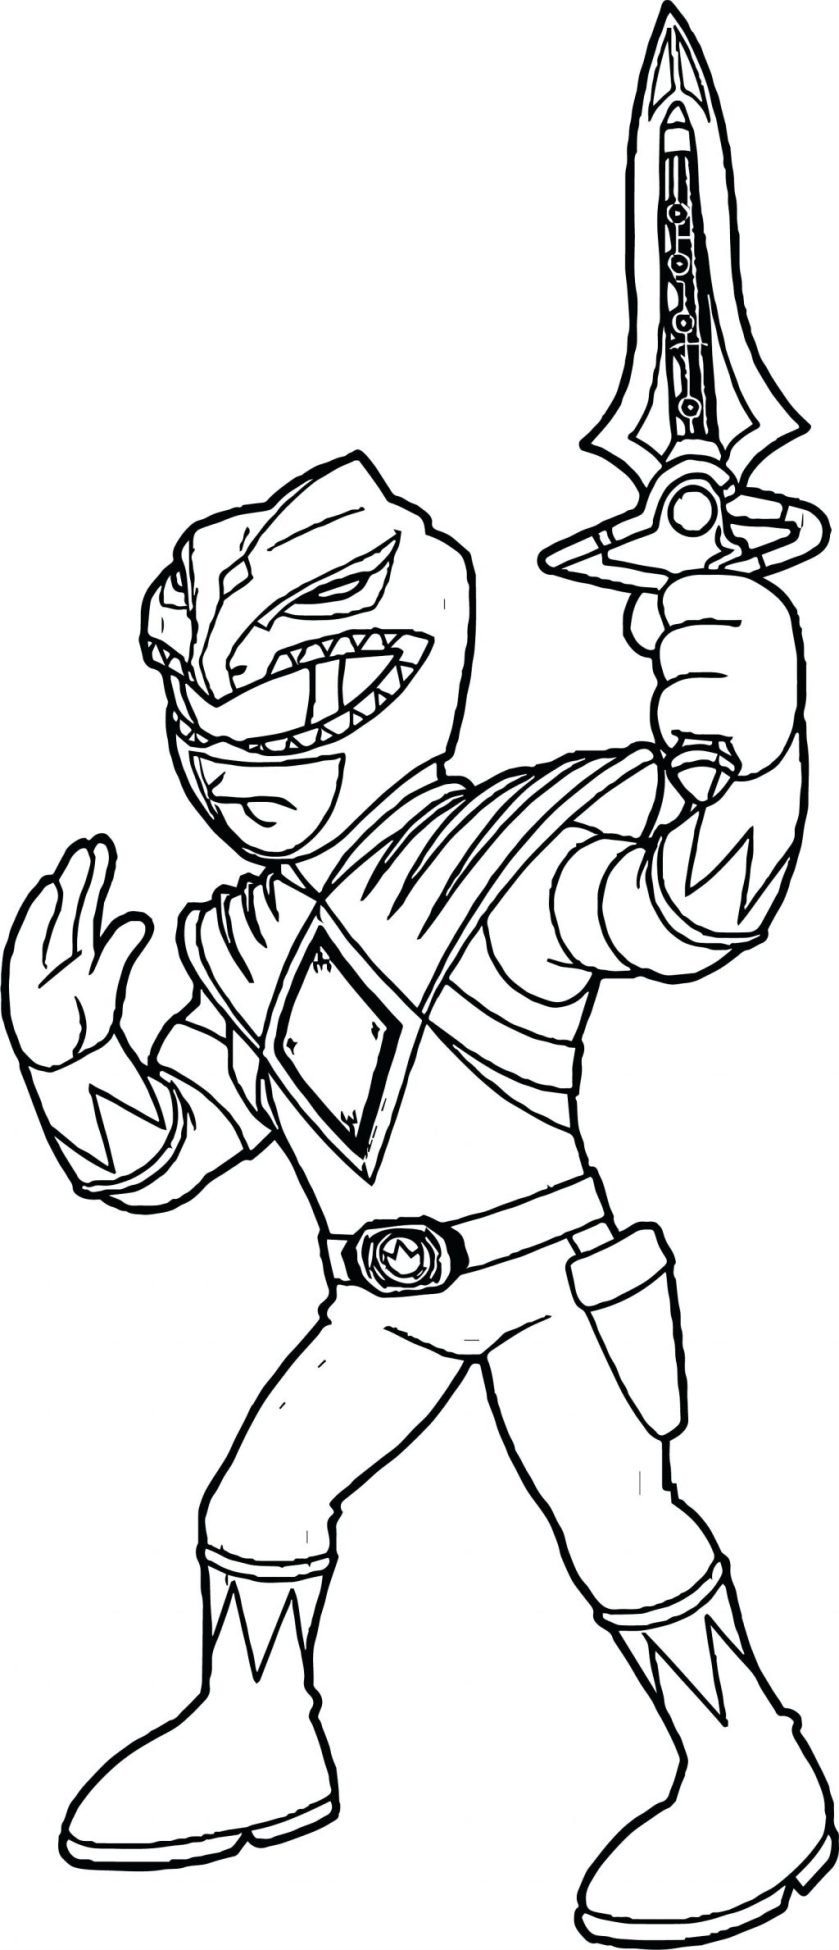 green ranger coloring pages at getcolorings  free